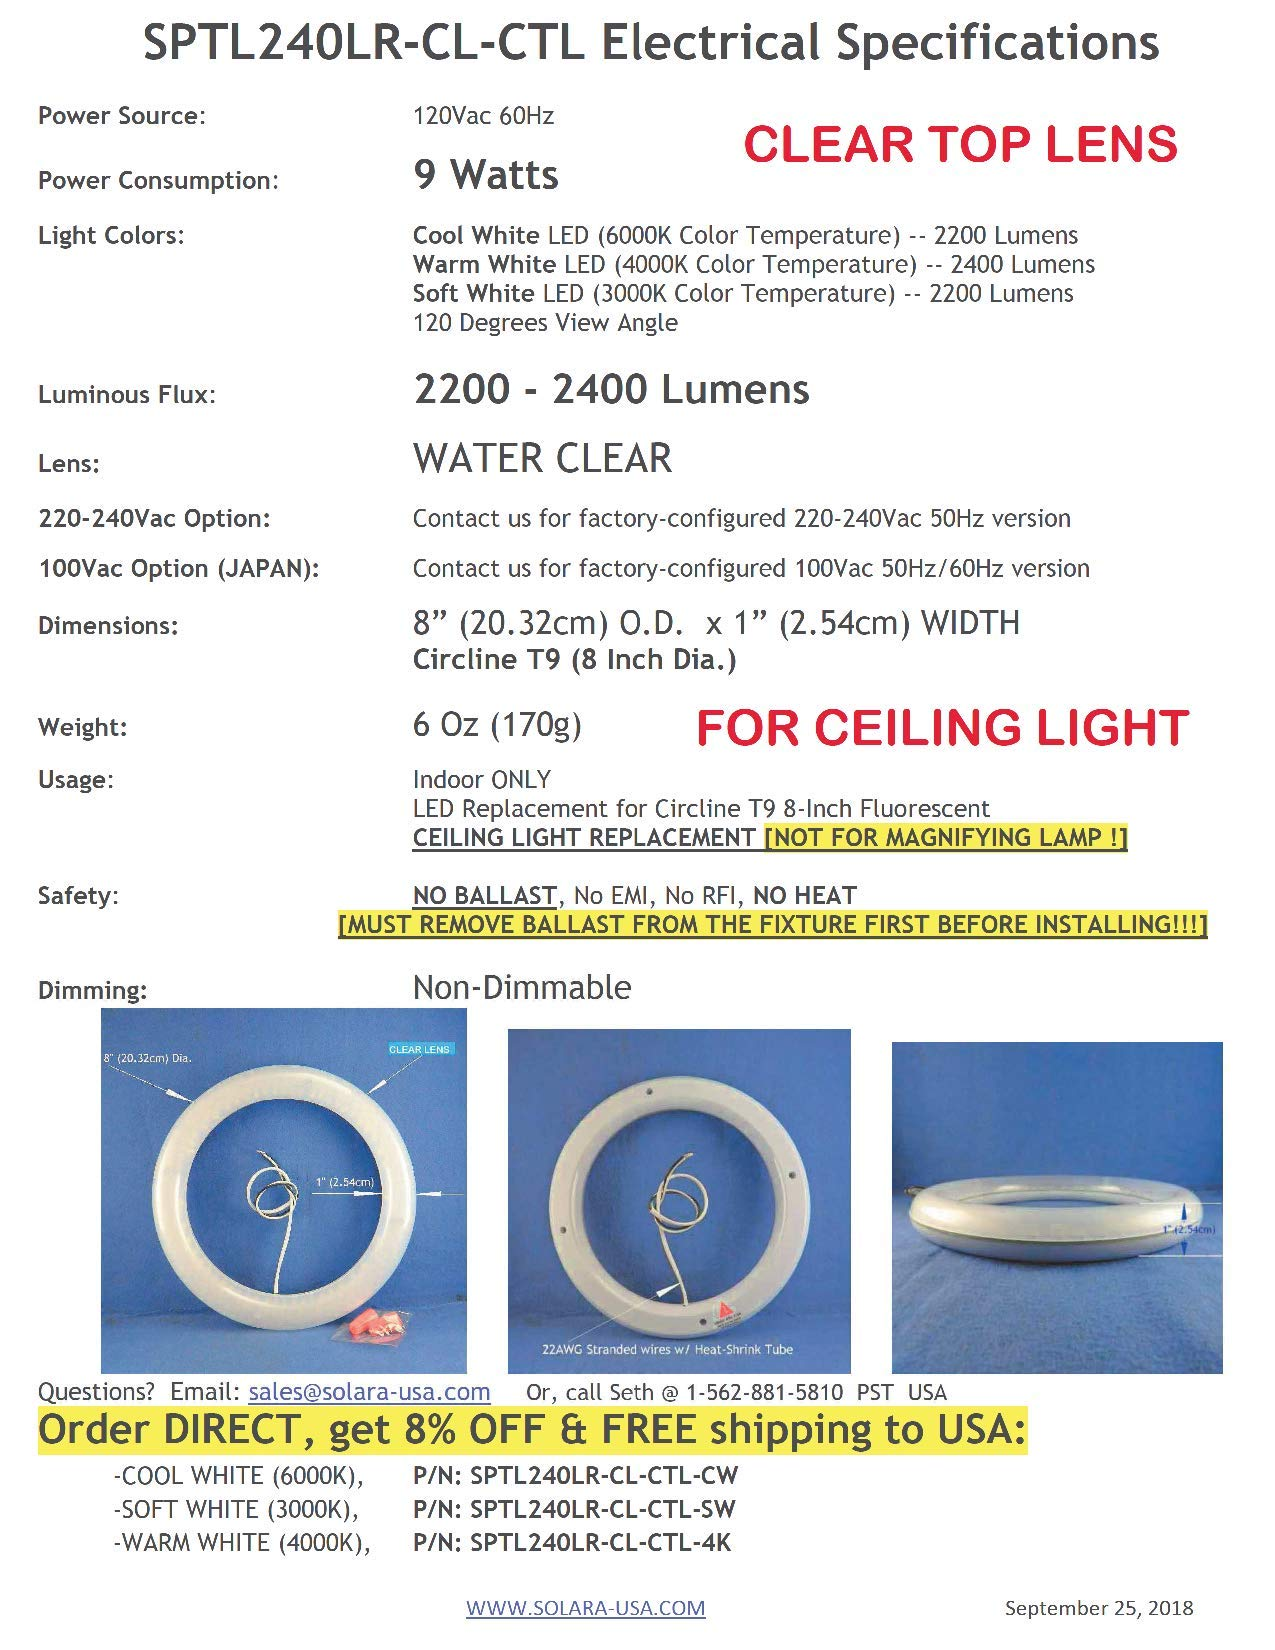 SOLARA-USA Our Brightest LED Circline T9 Lamp (8-inch) for Ceiling Fan Light & Ceiling Light Fixture- 120Vac 9Watts 2000Lumens - Non-DIMMABLE. (for Ceiling - Clear TOP Lens - Cool White [6000K]) by SOLARA-USA (Image #9)